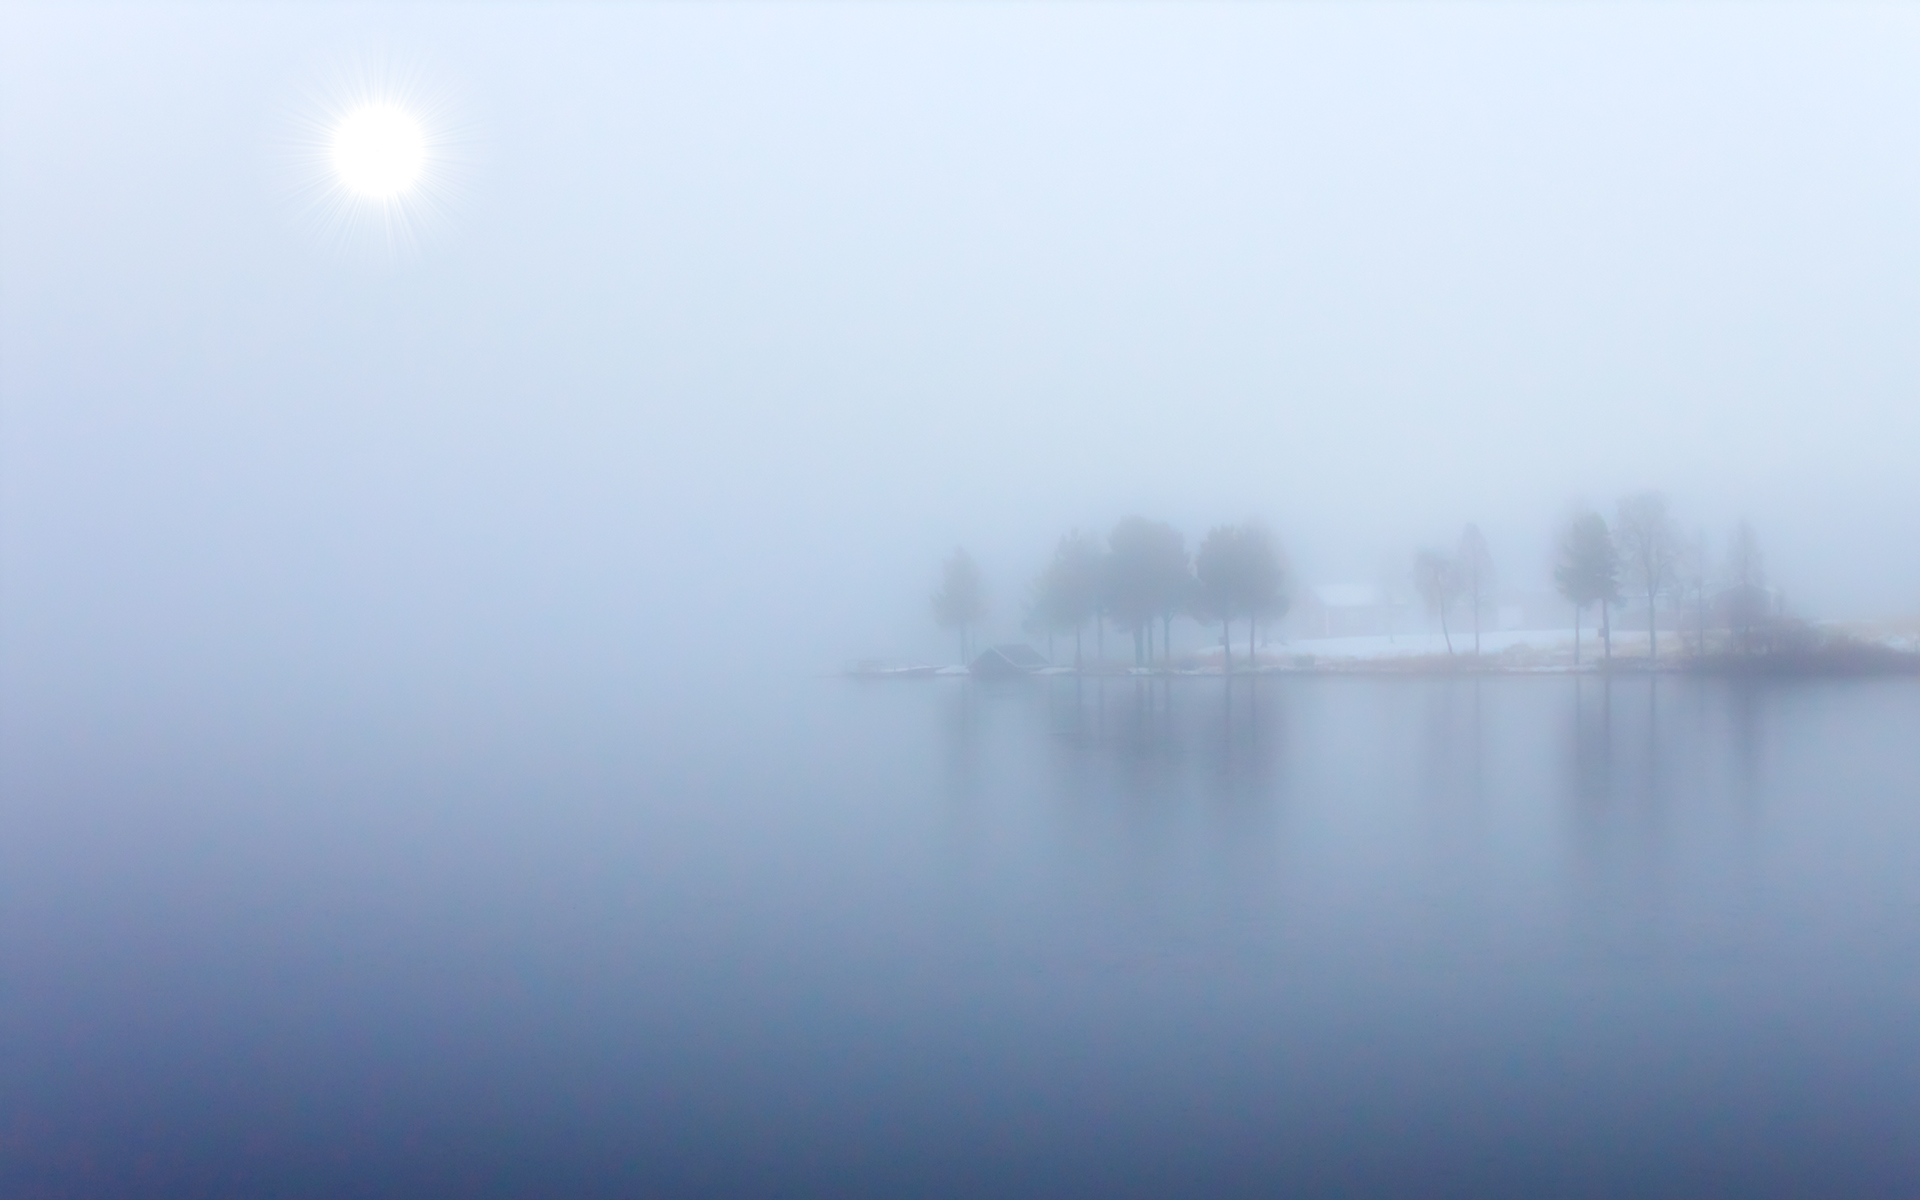 Cool Lake Mist Wallpaper 33768 1920x1200 px